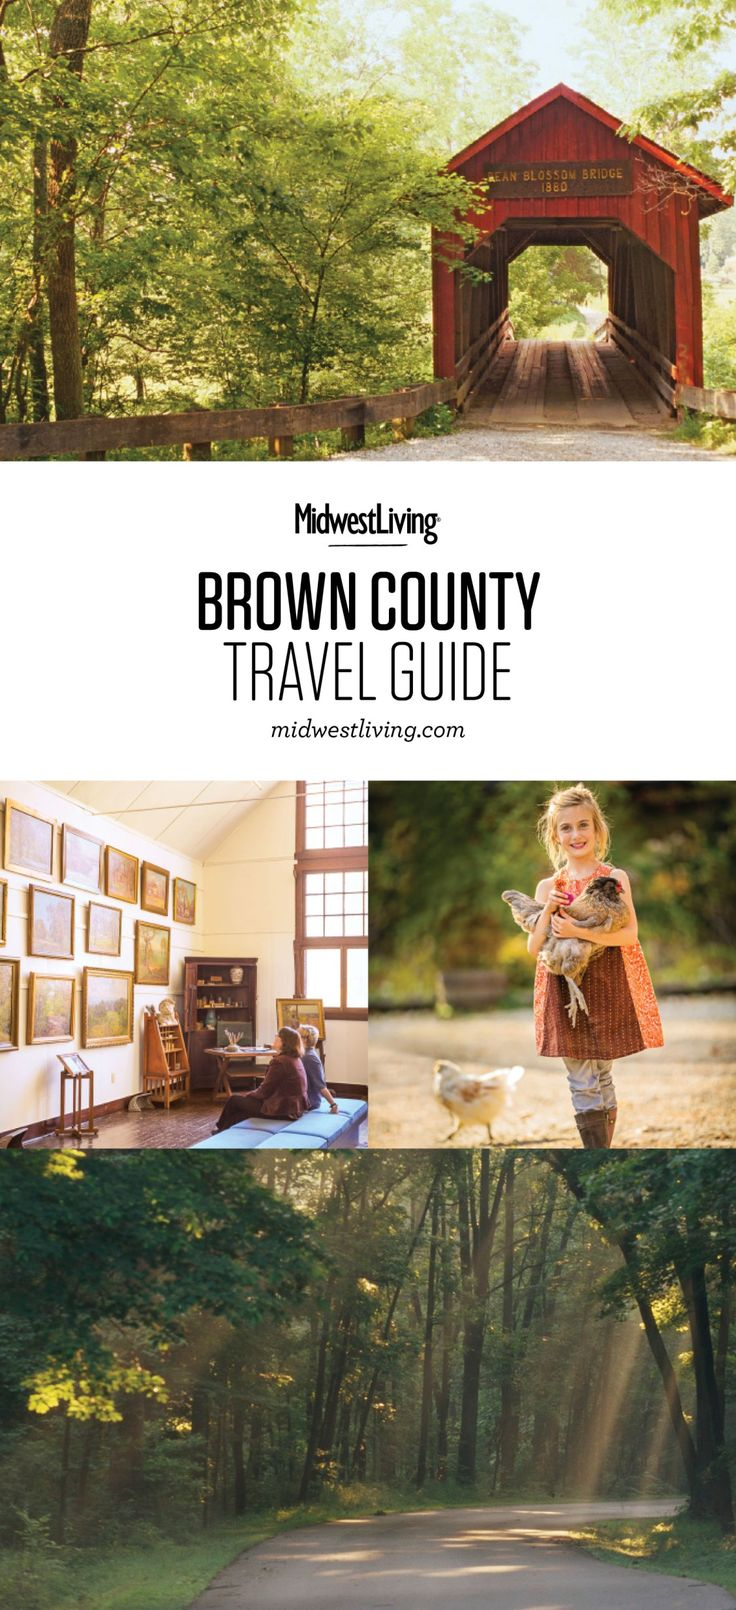 Hiking at Brown County State Park, shopping in Nashville, and learning about the area's artistic heritage at T.C. Steele State Historic Site are just a few of the highlights of Brown County. Check out our recommendations for what to do, where to eat and where to stay.